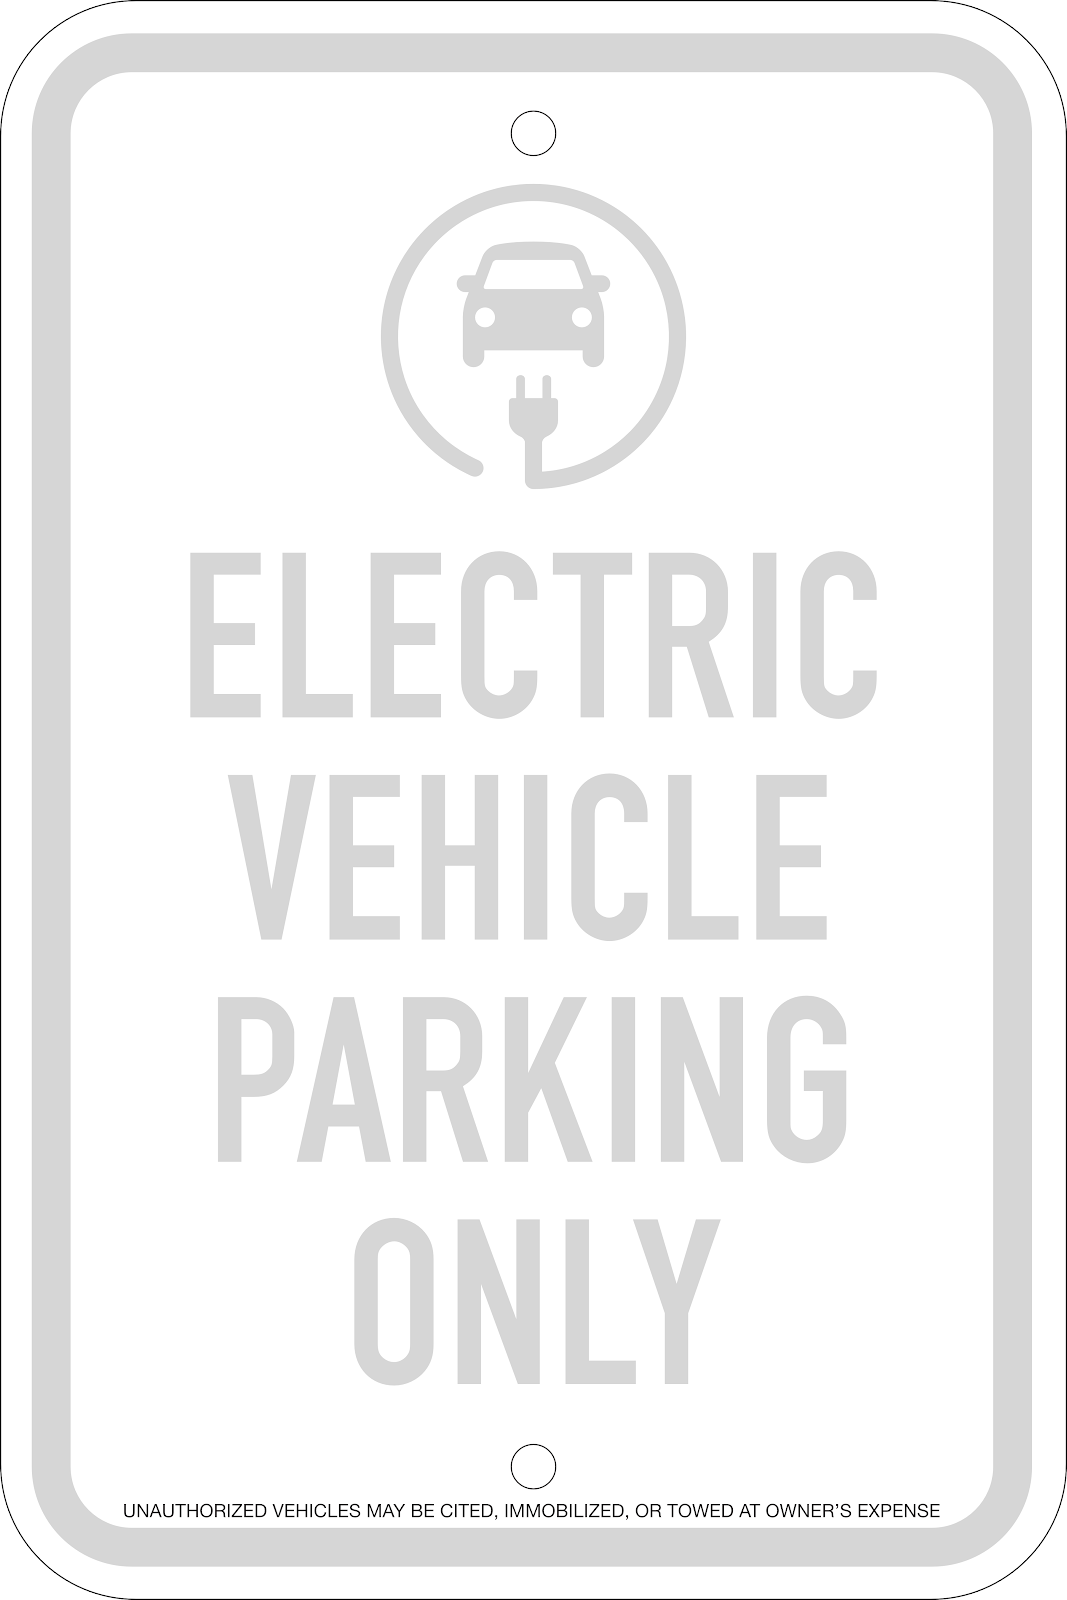 Electric Vehicle Parking Only Sign, 12x18